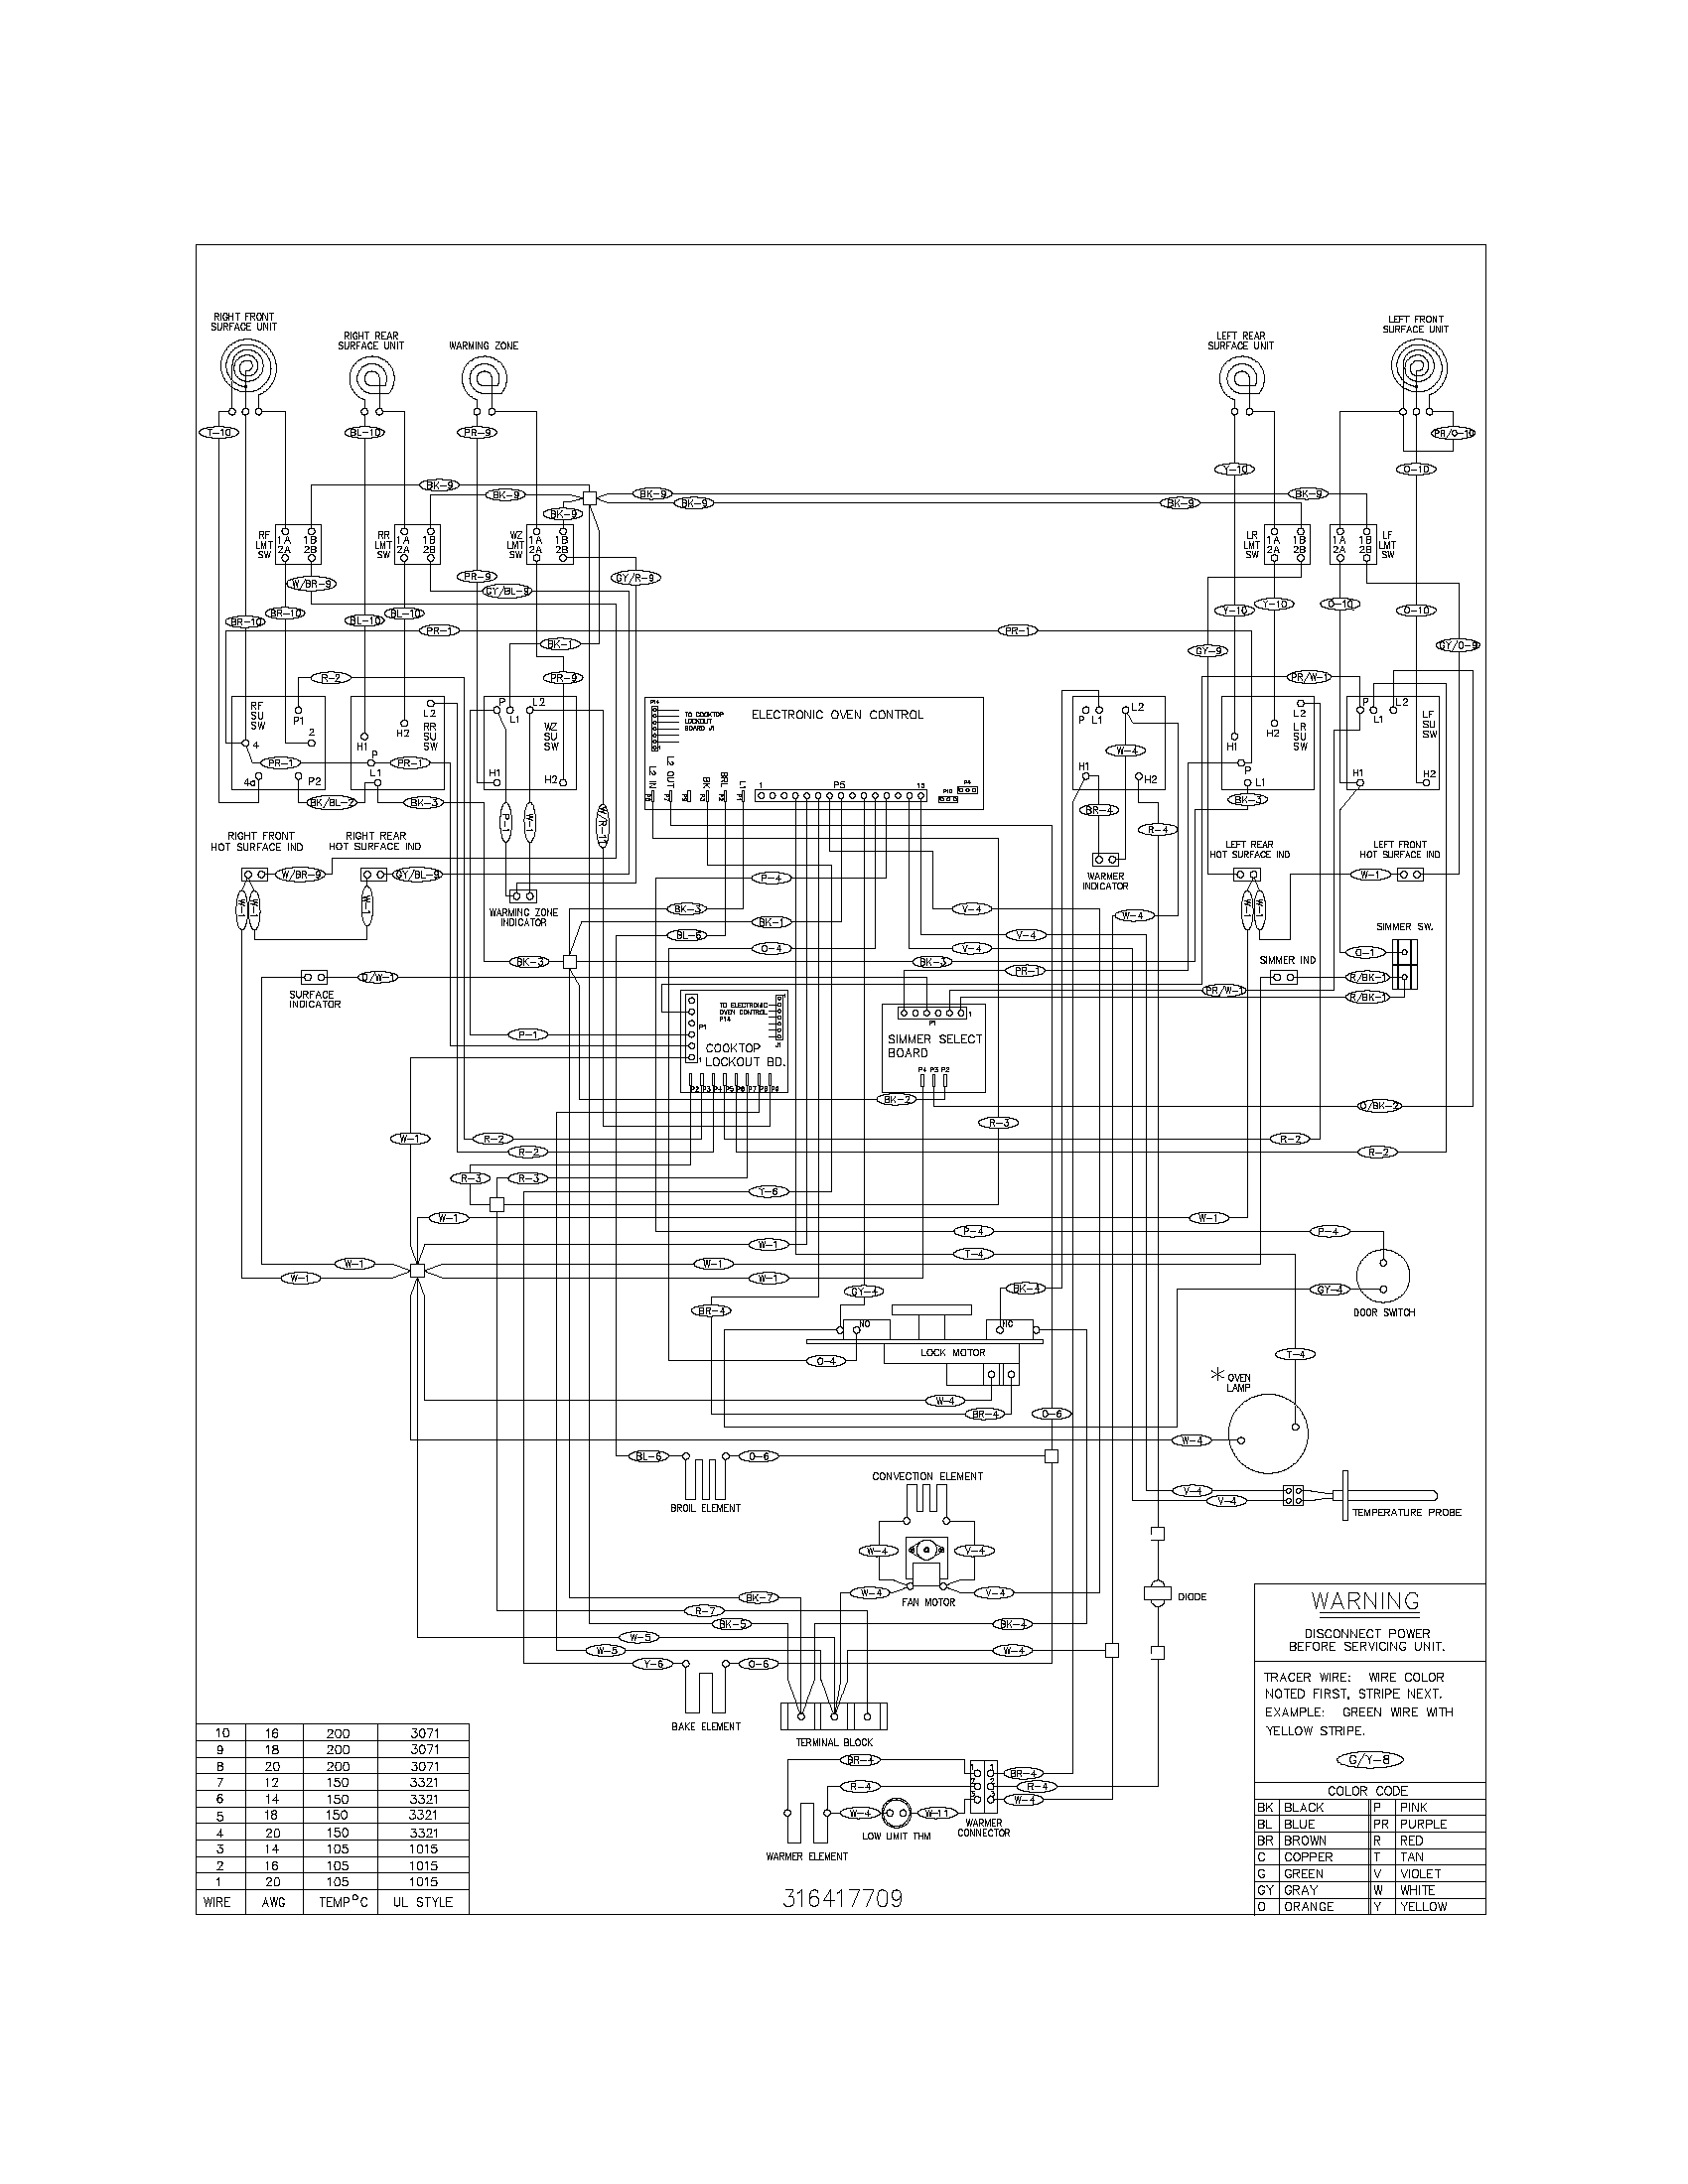 kenmore dryer thermostat wiring diagram wire mazda cx5 collection